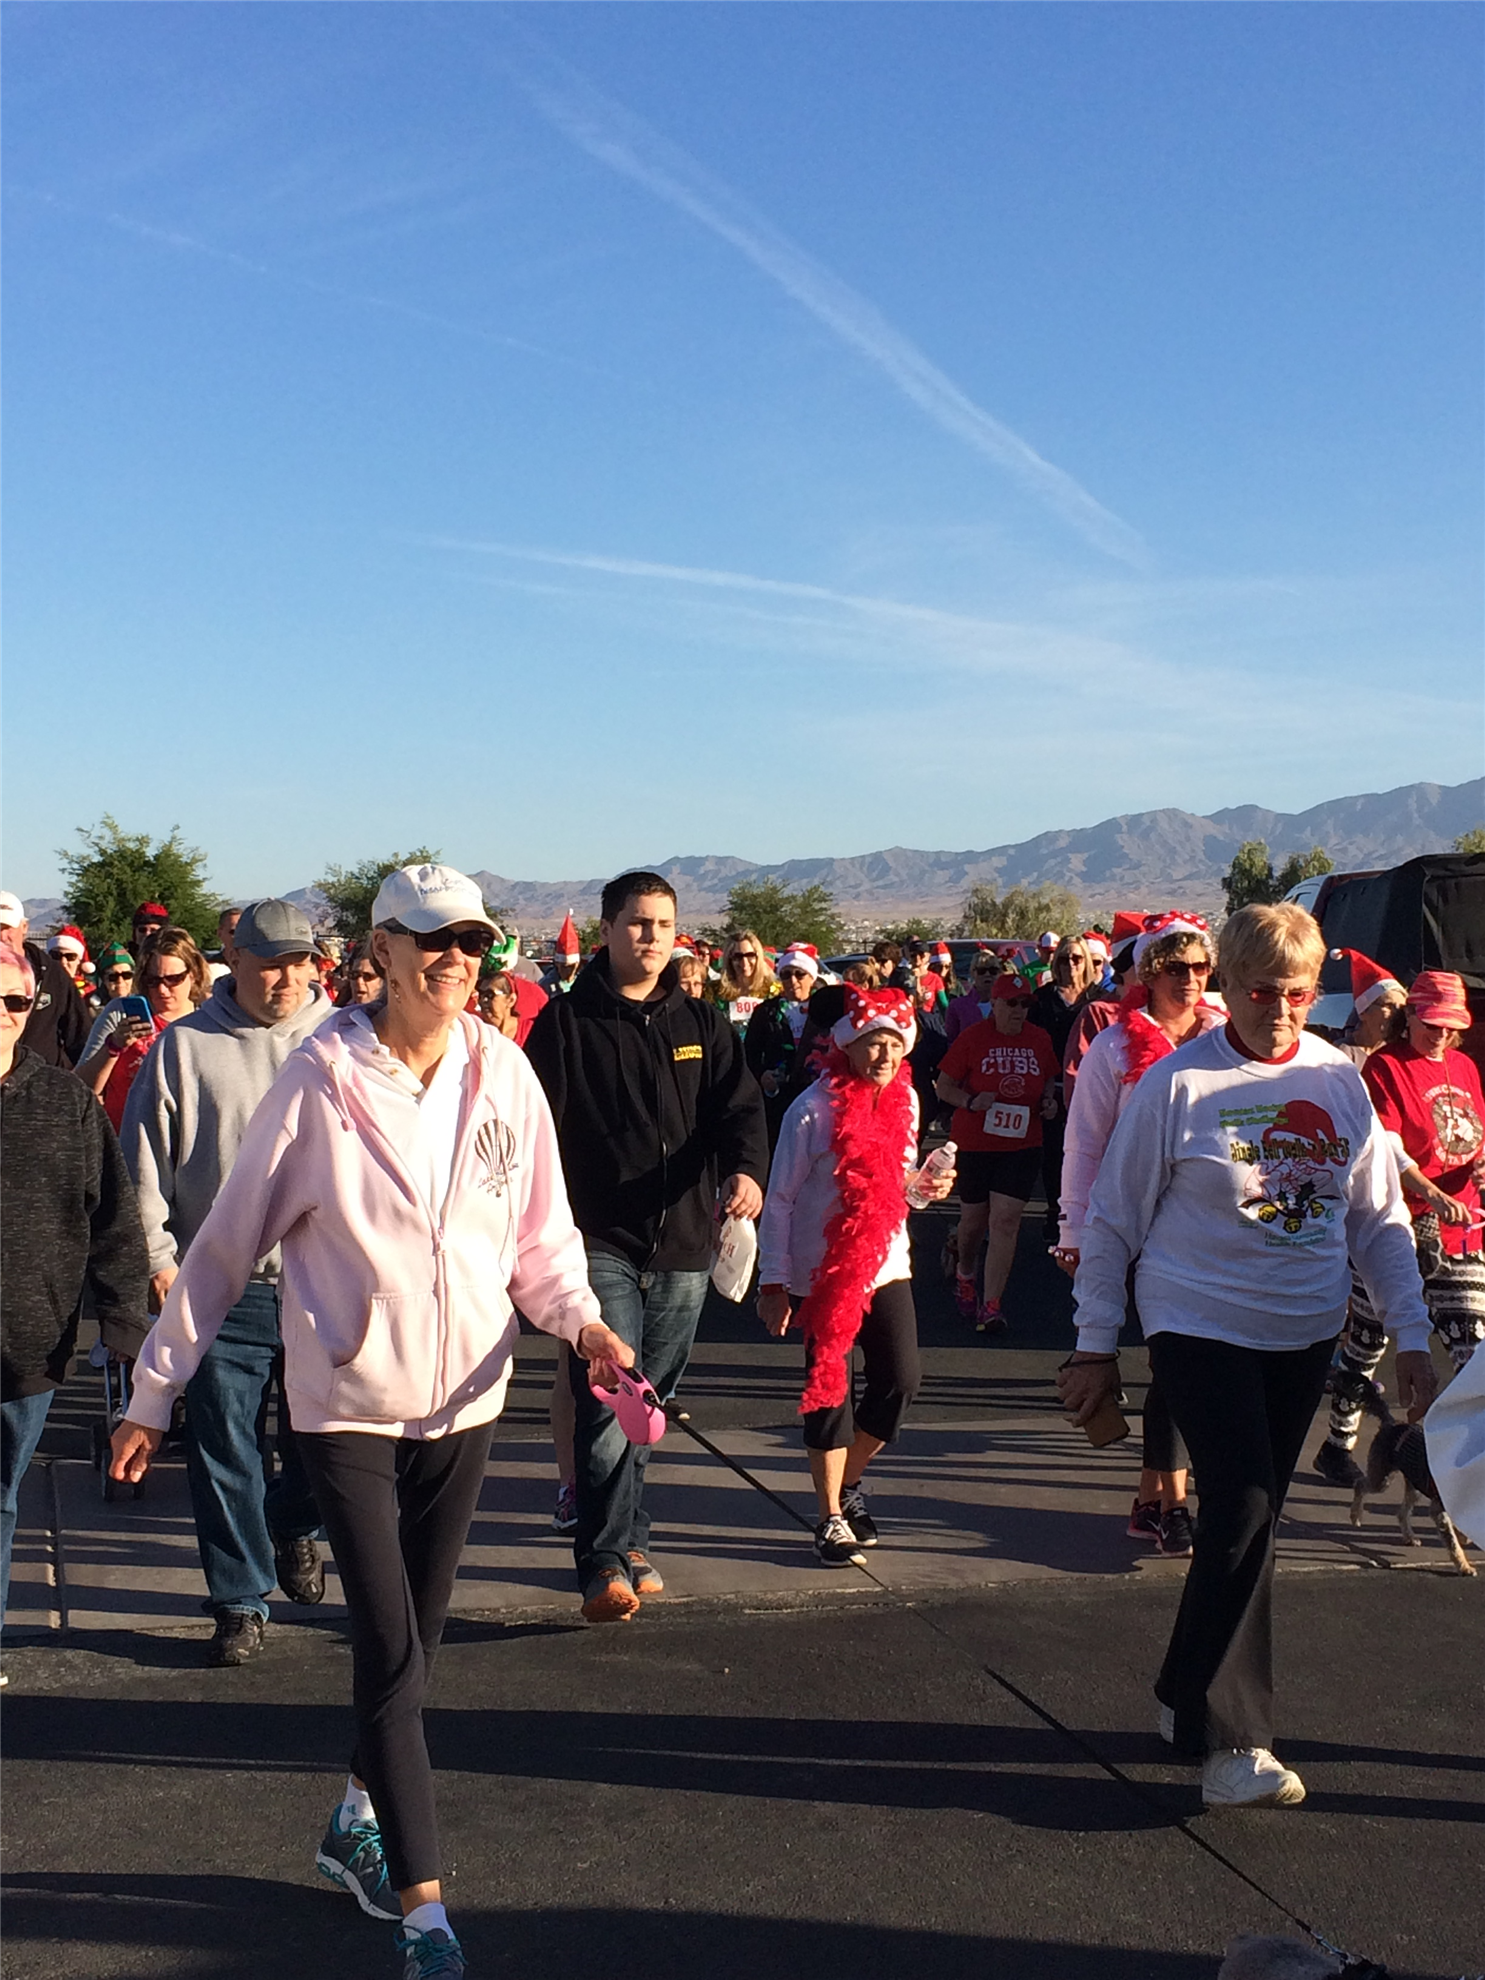 Walkers at 2017 Jingle Bell Walk